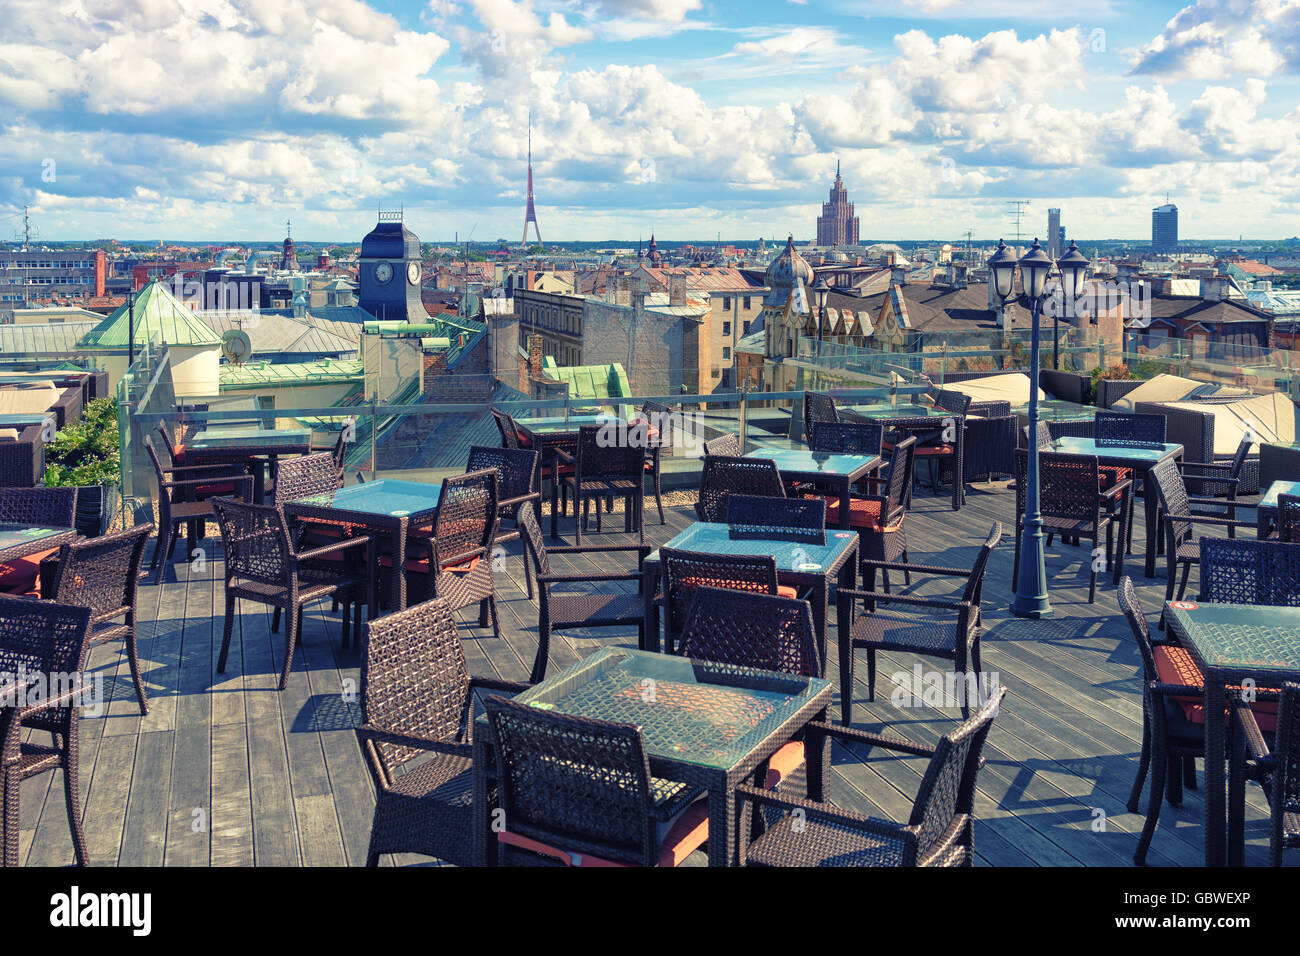 Cafe tables on the terrace roof of the building with views of the towers and skyscrapers in the city of Riga with - Stock Image